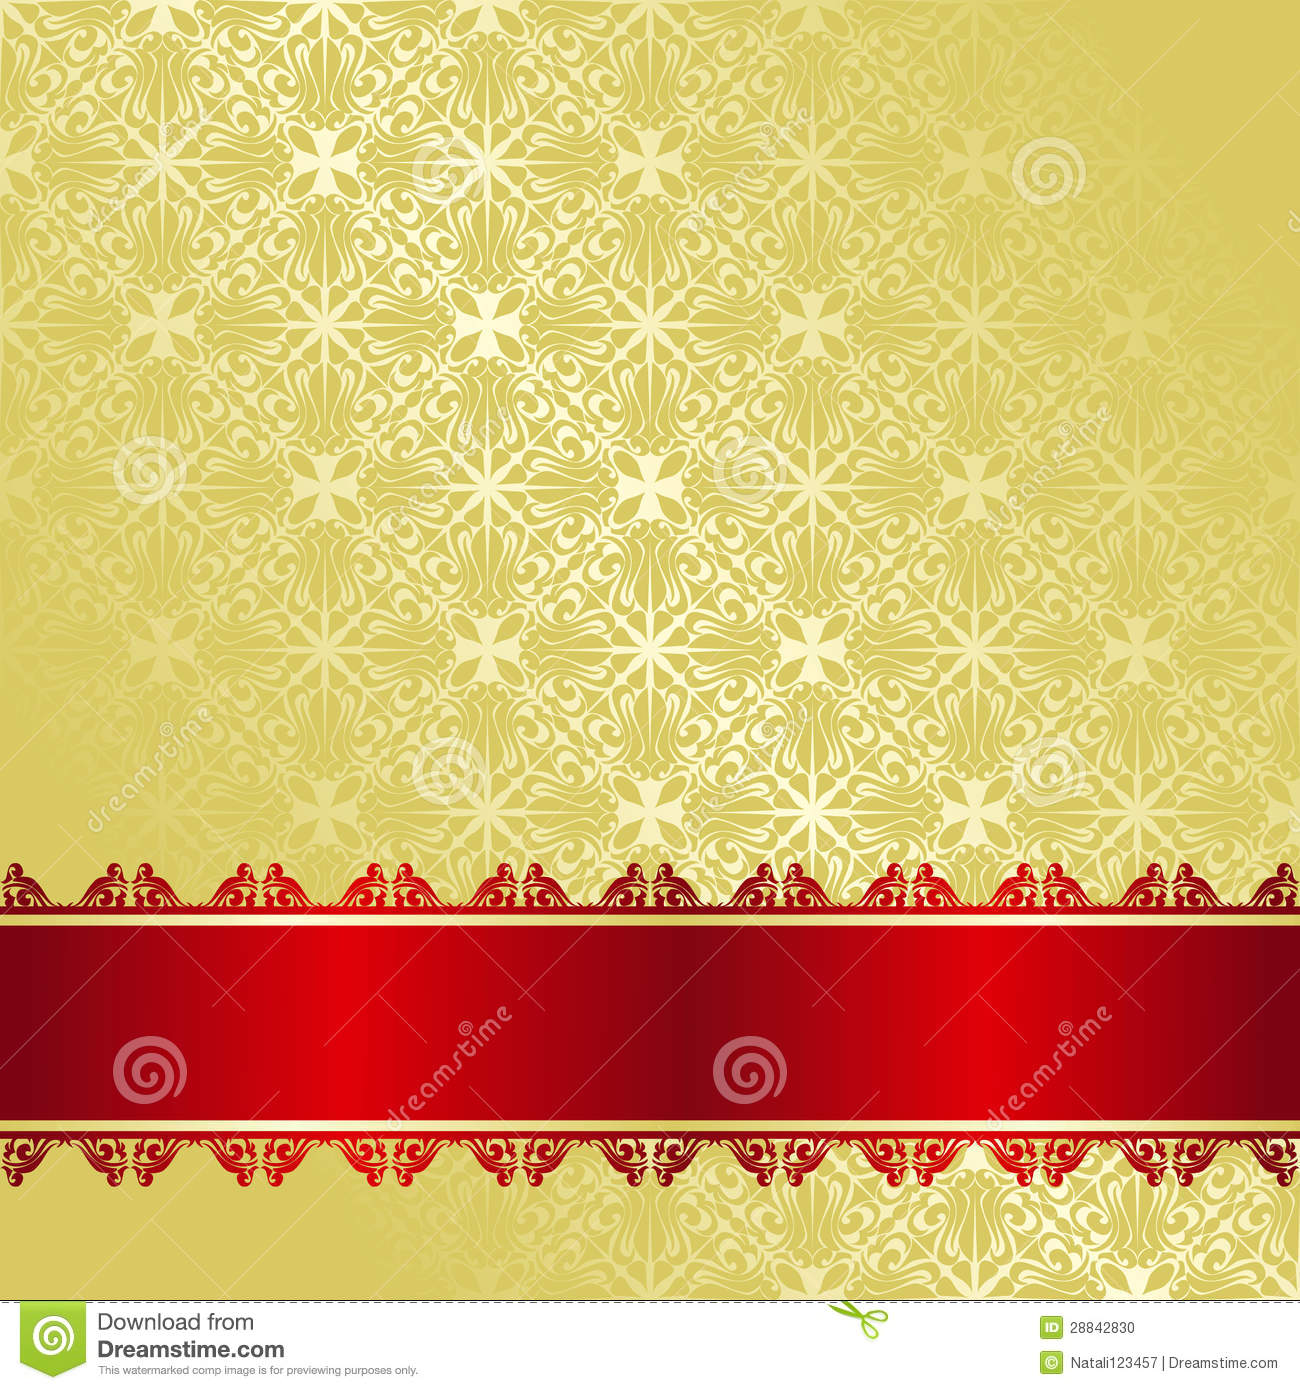 red golden background - photo #8